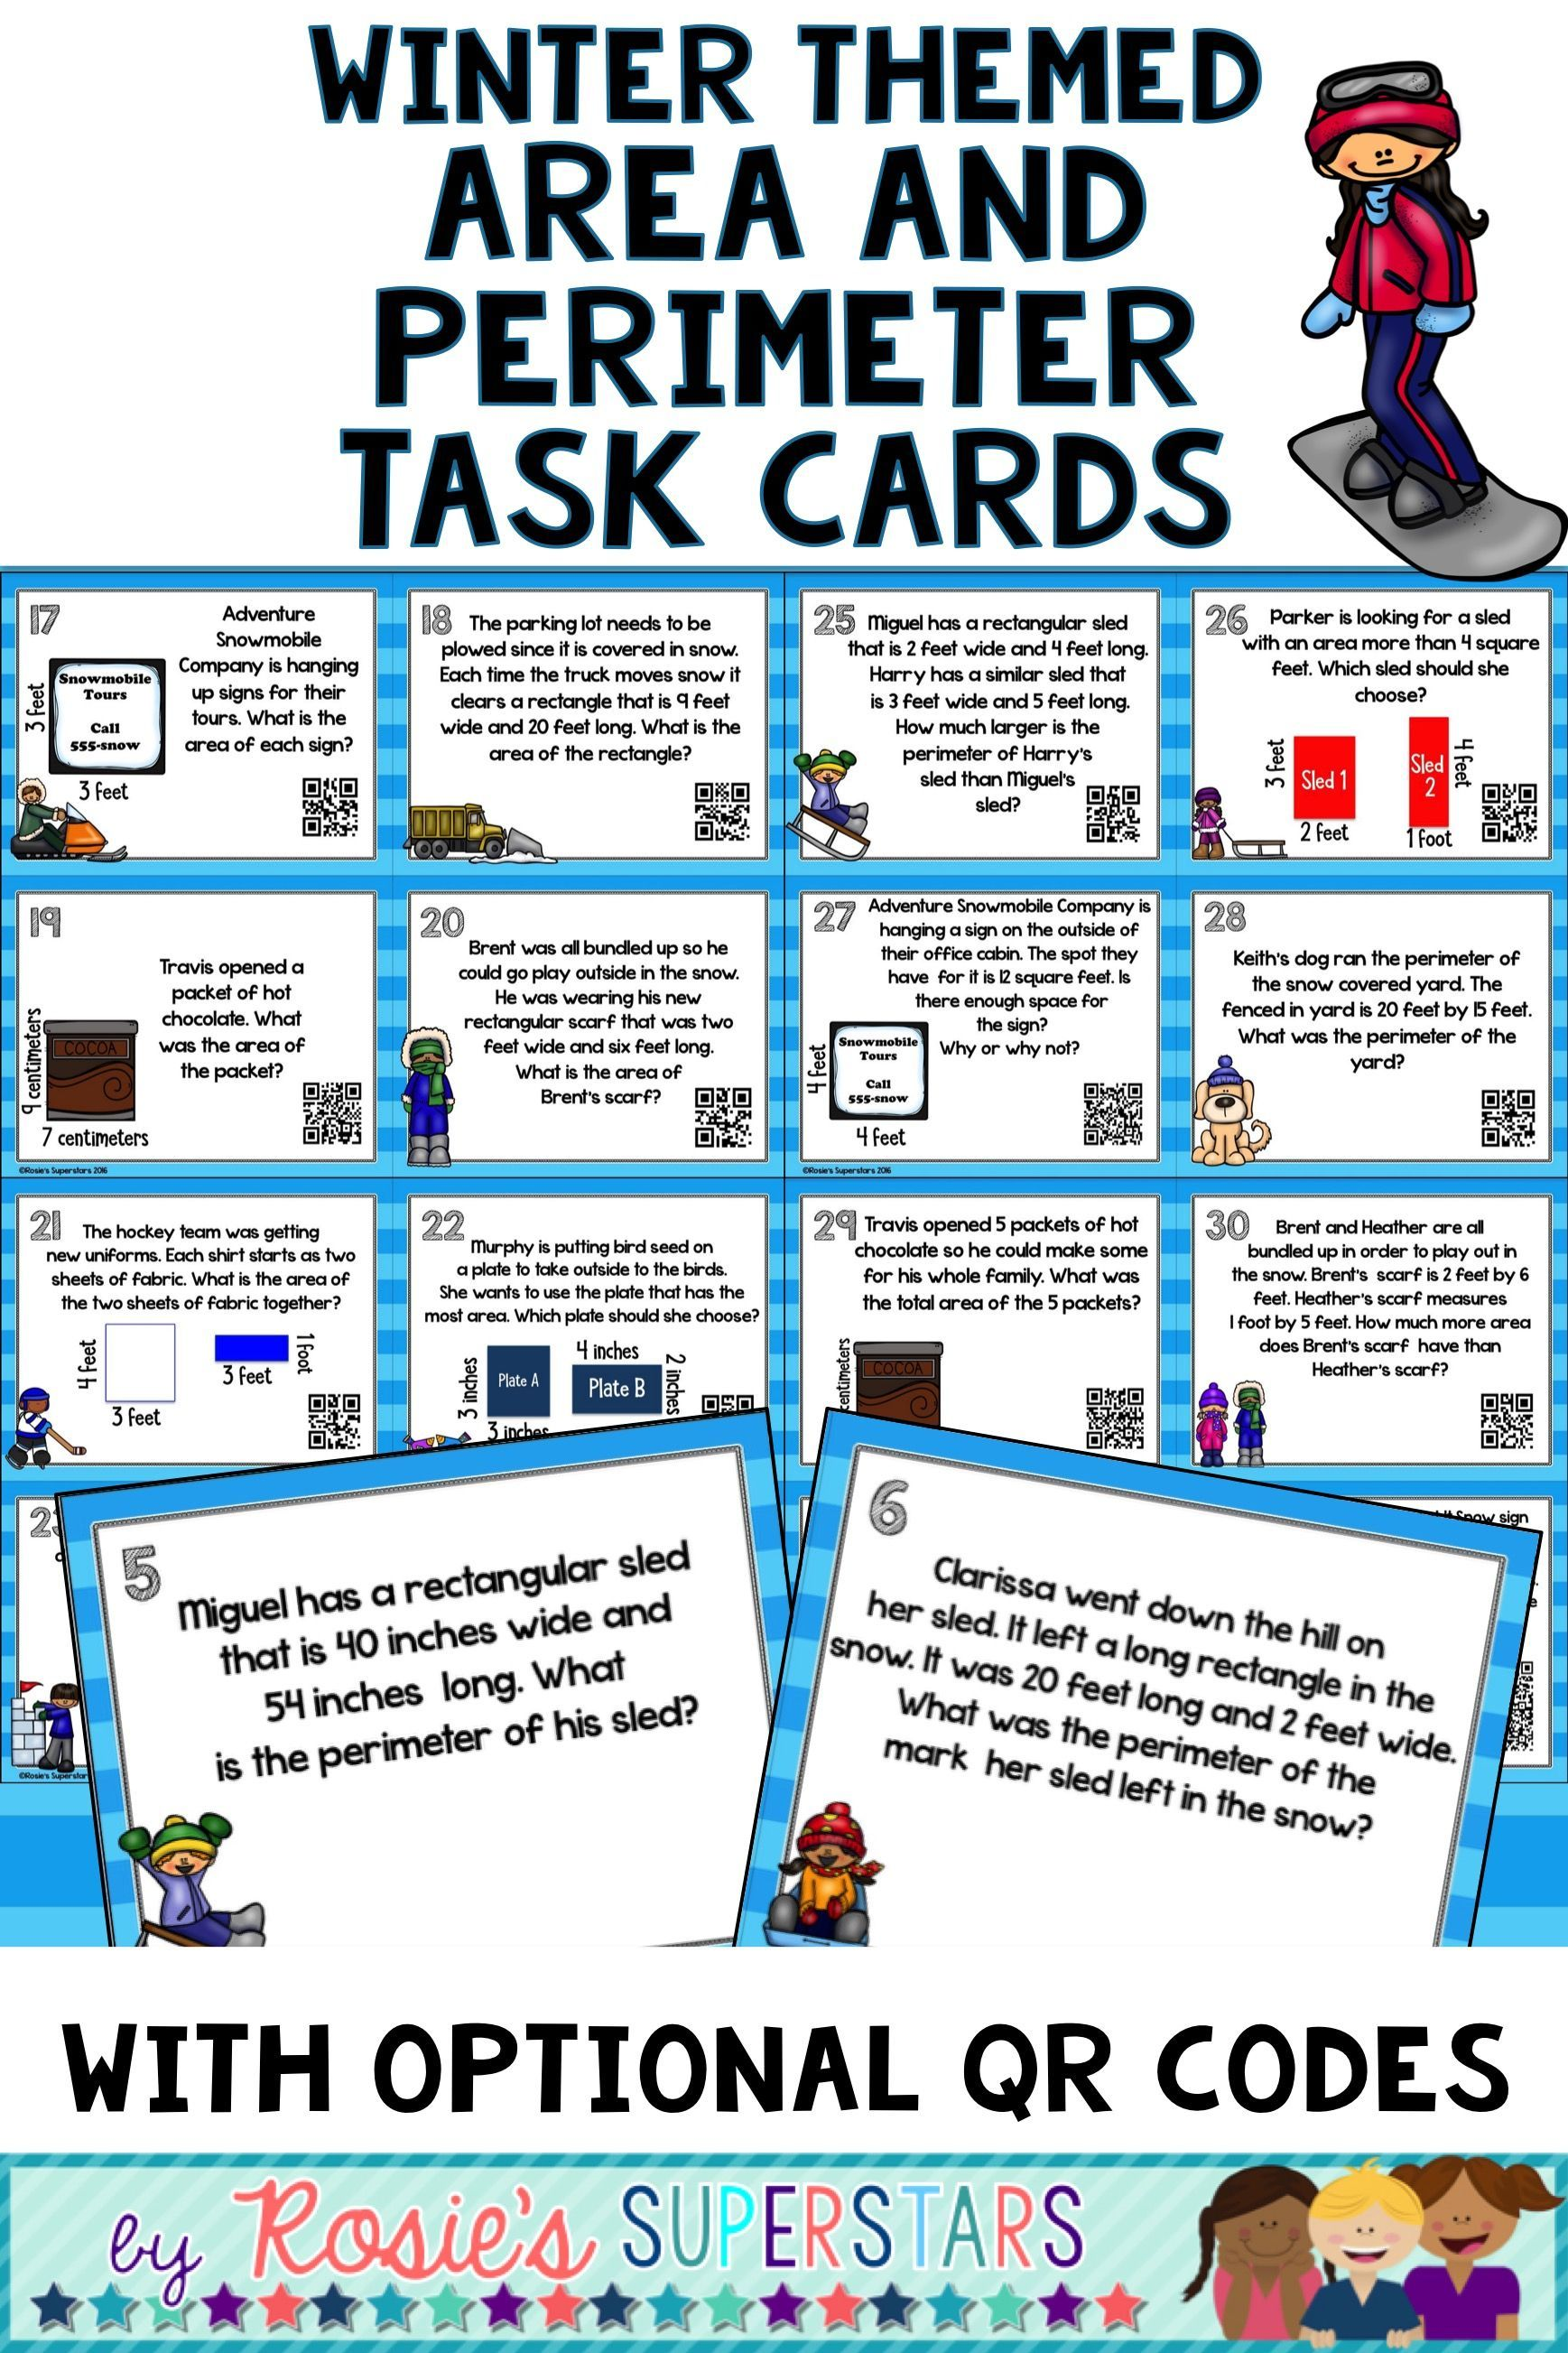 Winter Themed Area And Perimeter Task Cards With Optional